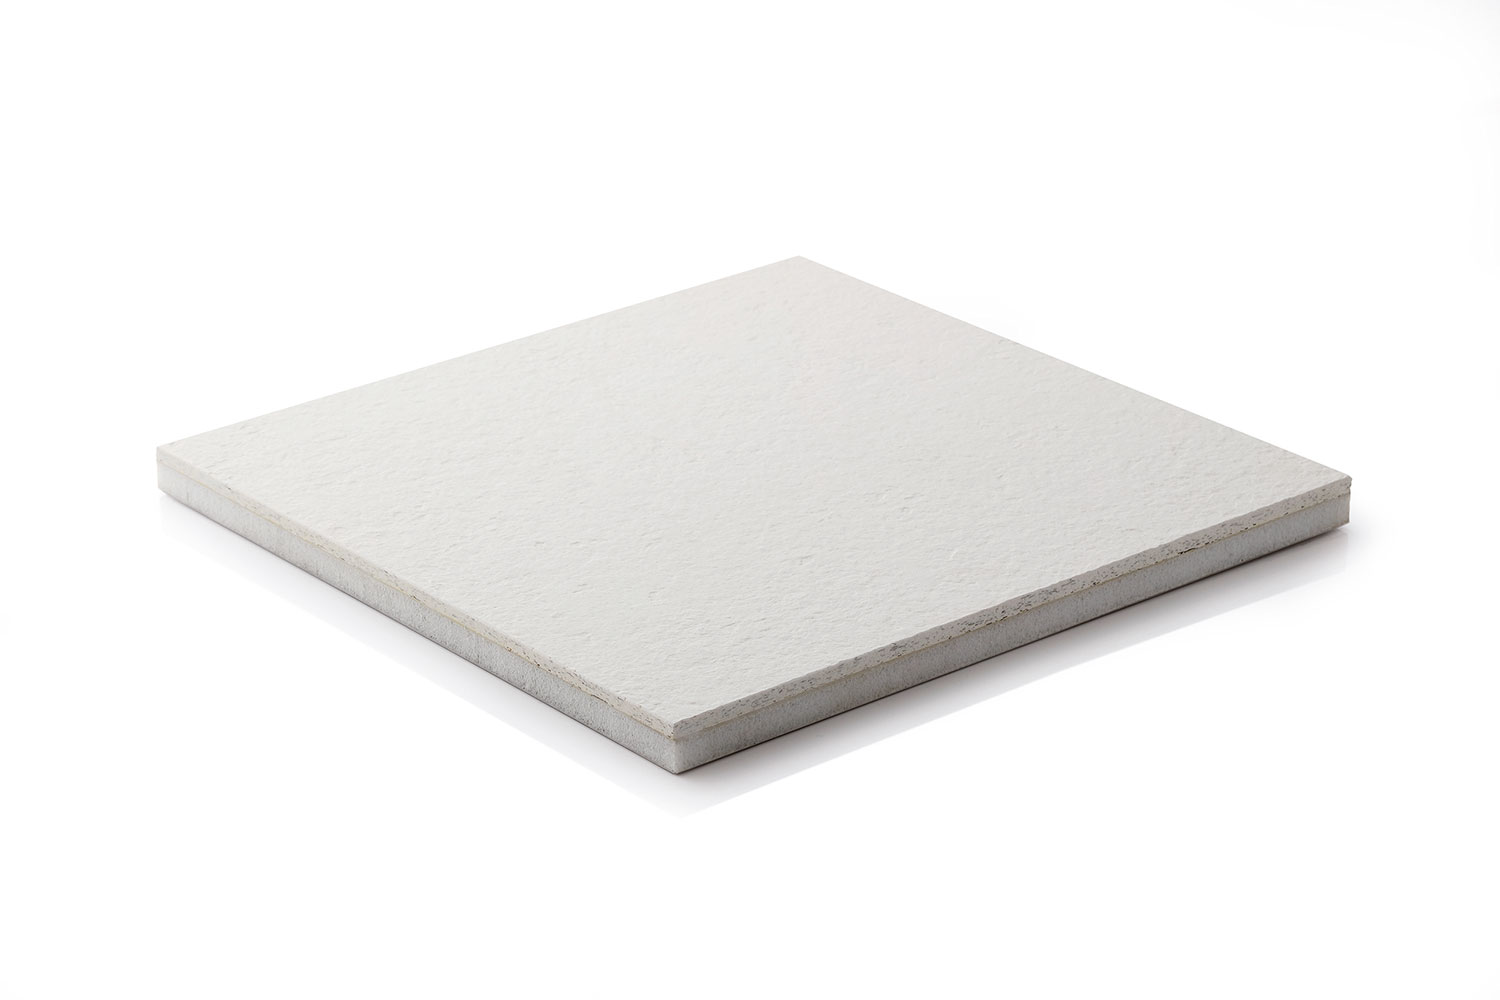 The innovative GammaStone AIR patented slabs